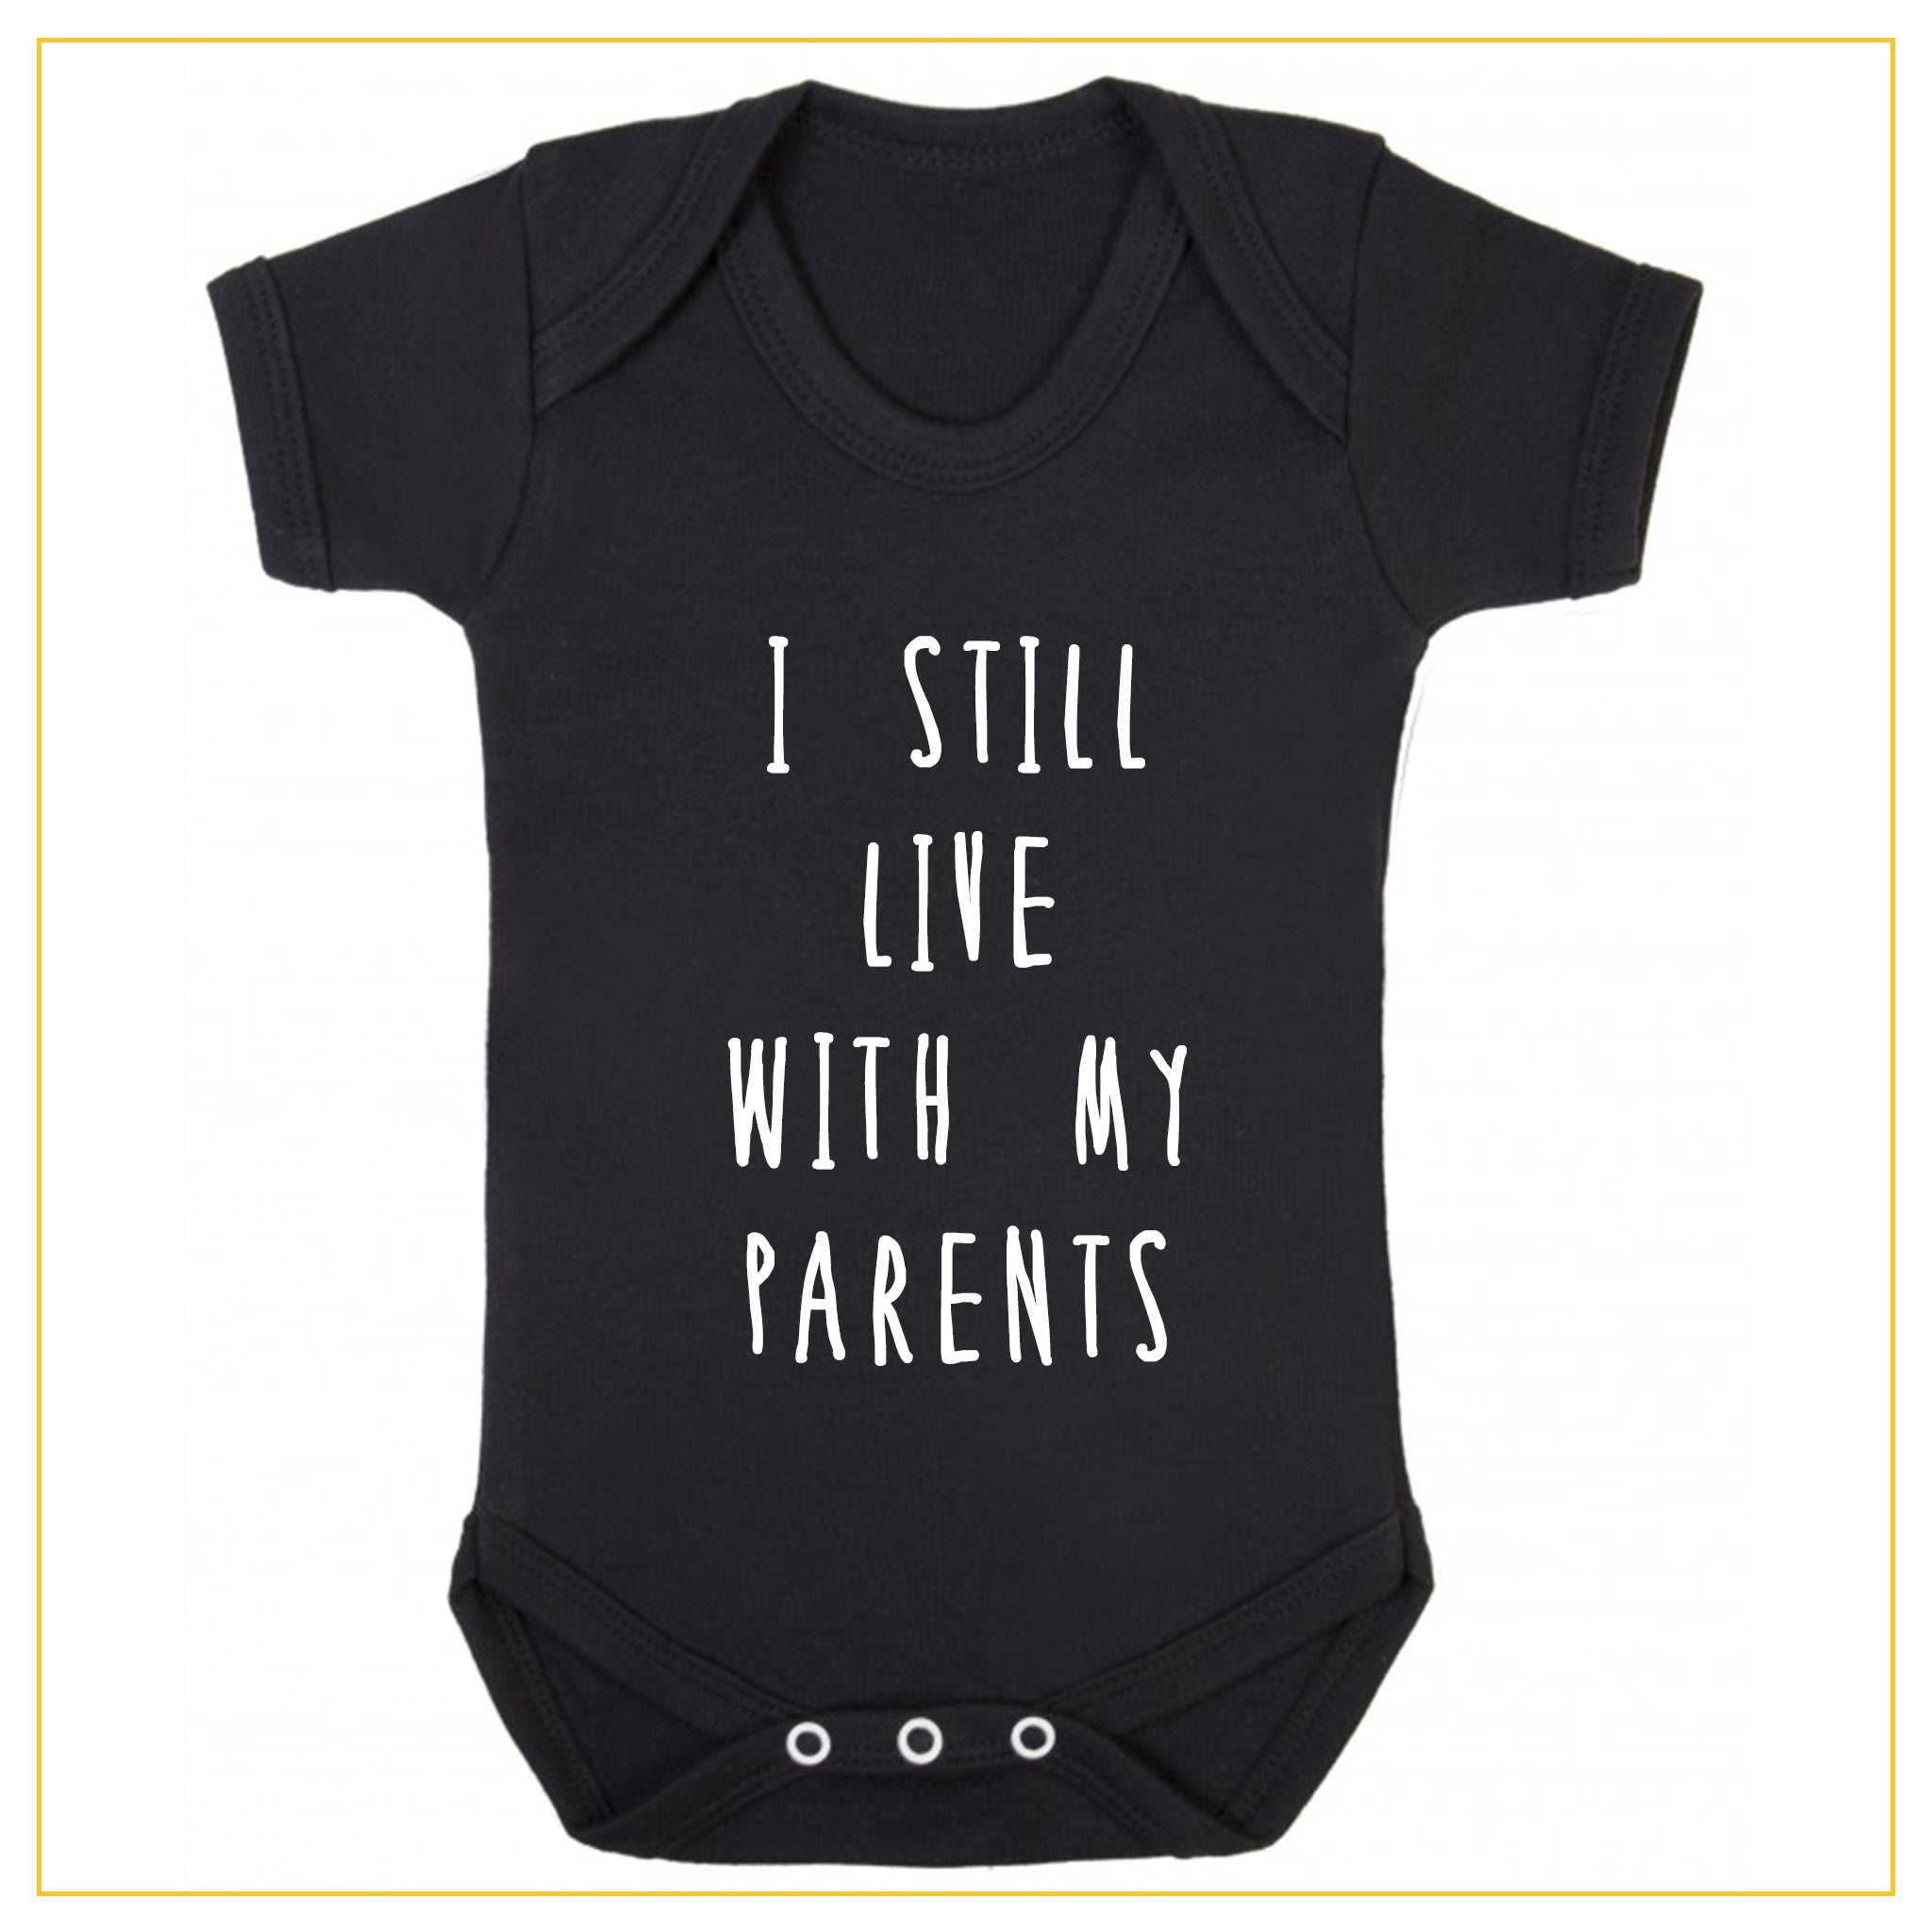 I still live with my parents baby onesie in black